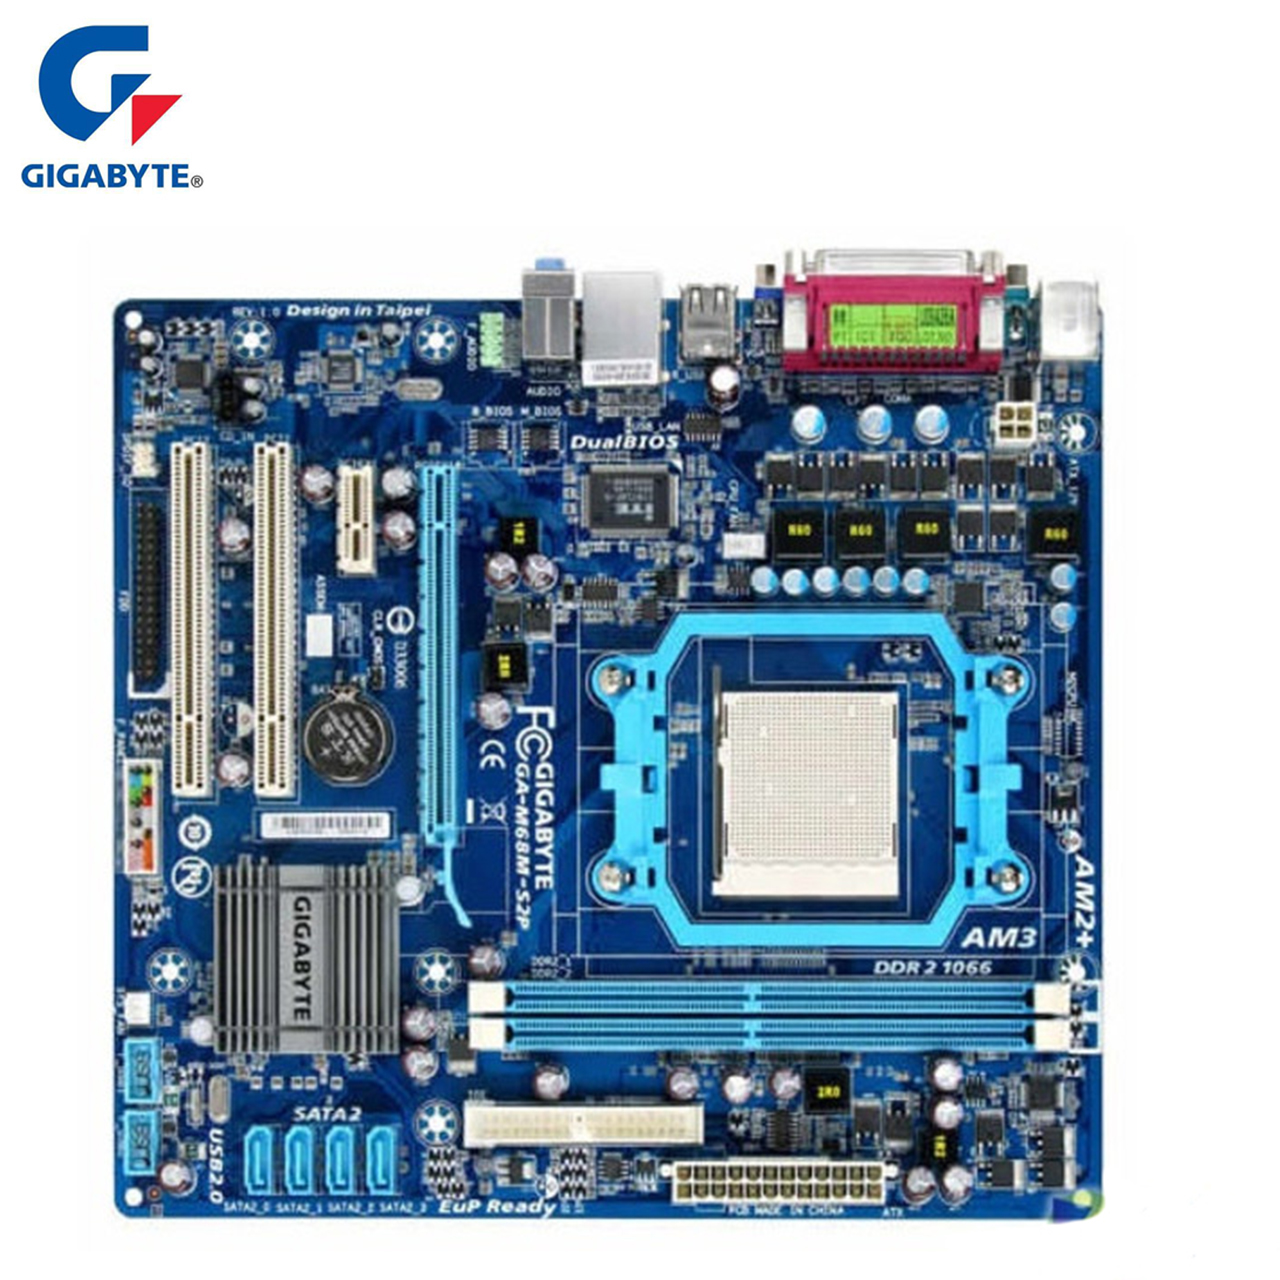 Gigabyte GA-M68M-S2P Motherboard DDR2 8GB Socket AM2/AM2+/AM3 M68M S2P Desktop Mainboard Systemboard Integrated Graphics Used image